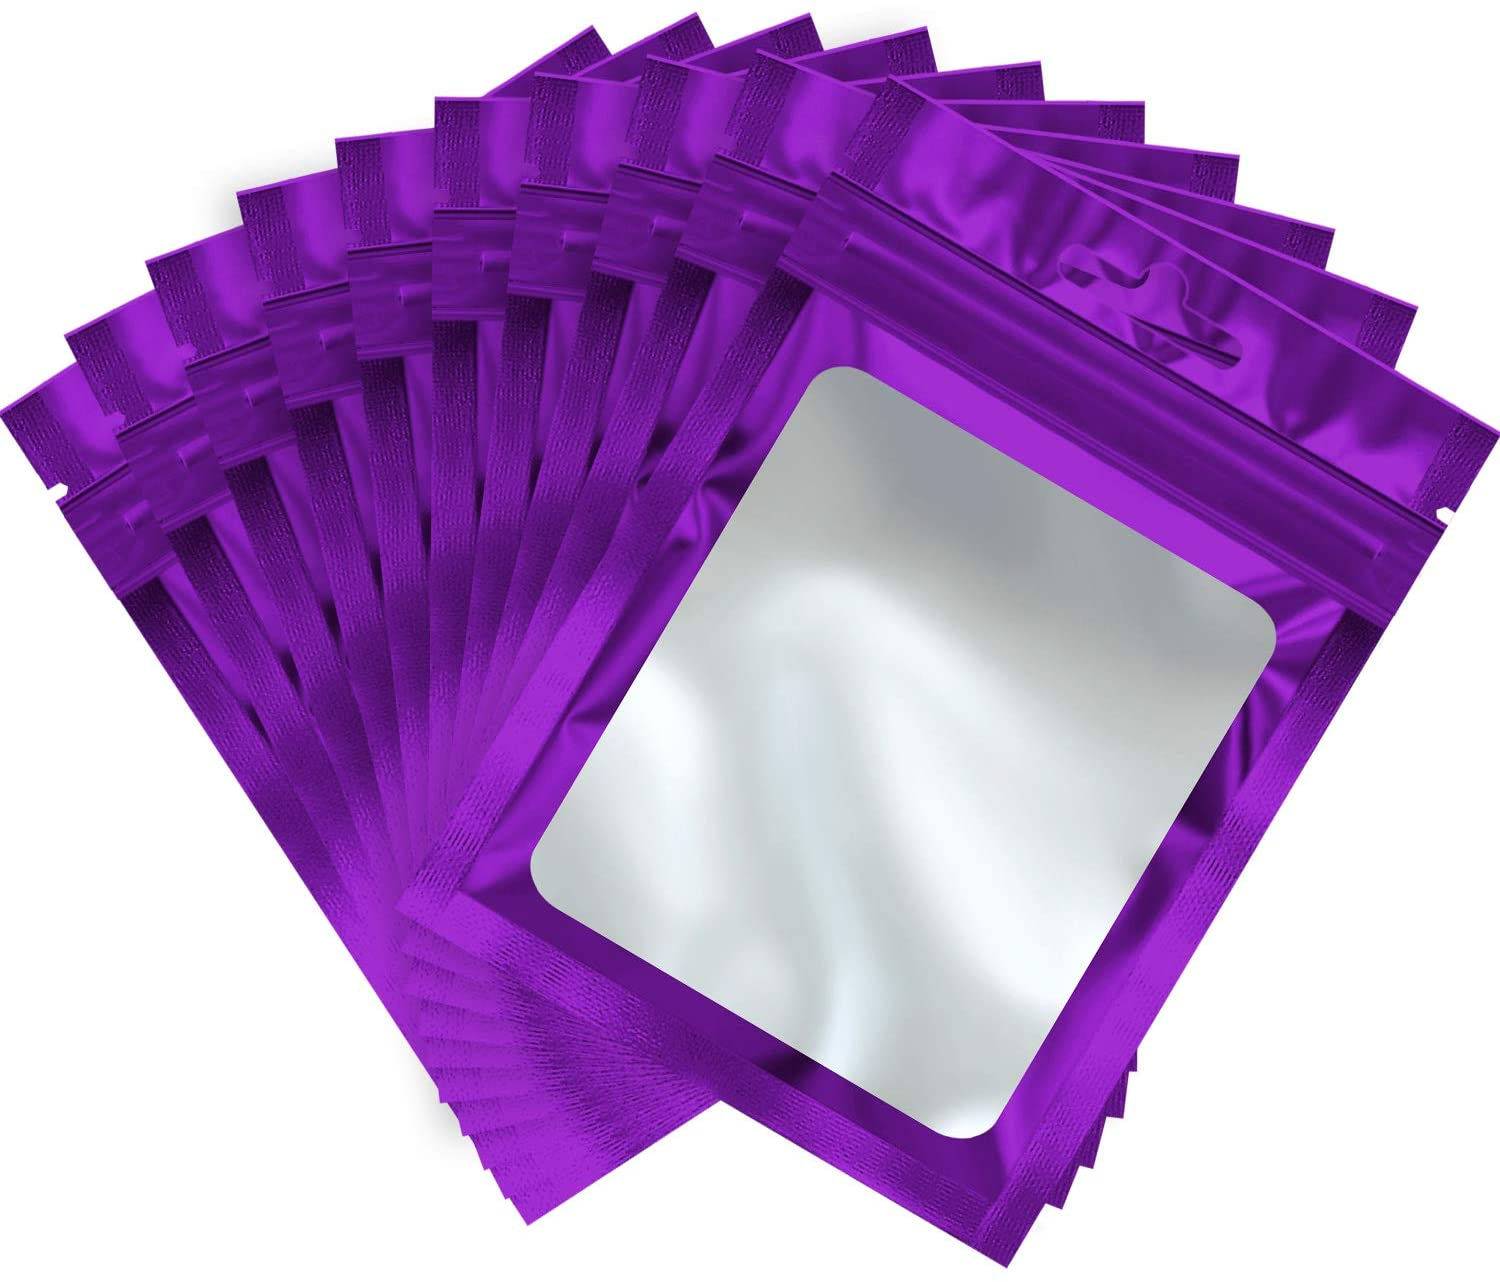 100 Pieces Resealable Mylar Ziplock Food Storage Bags with Clear Window Coffee Beans Packaging Pouch for Food Self Sealing Storage Supplies (Purple, 5.1 x 8.3 Inch)